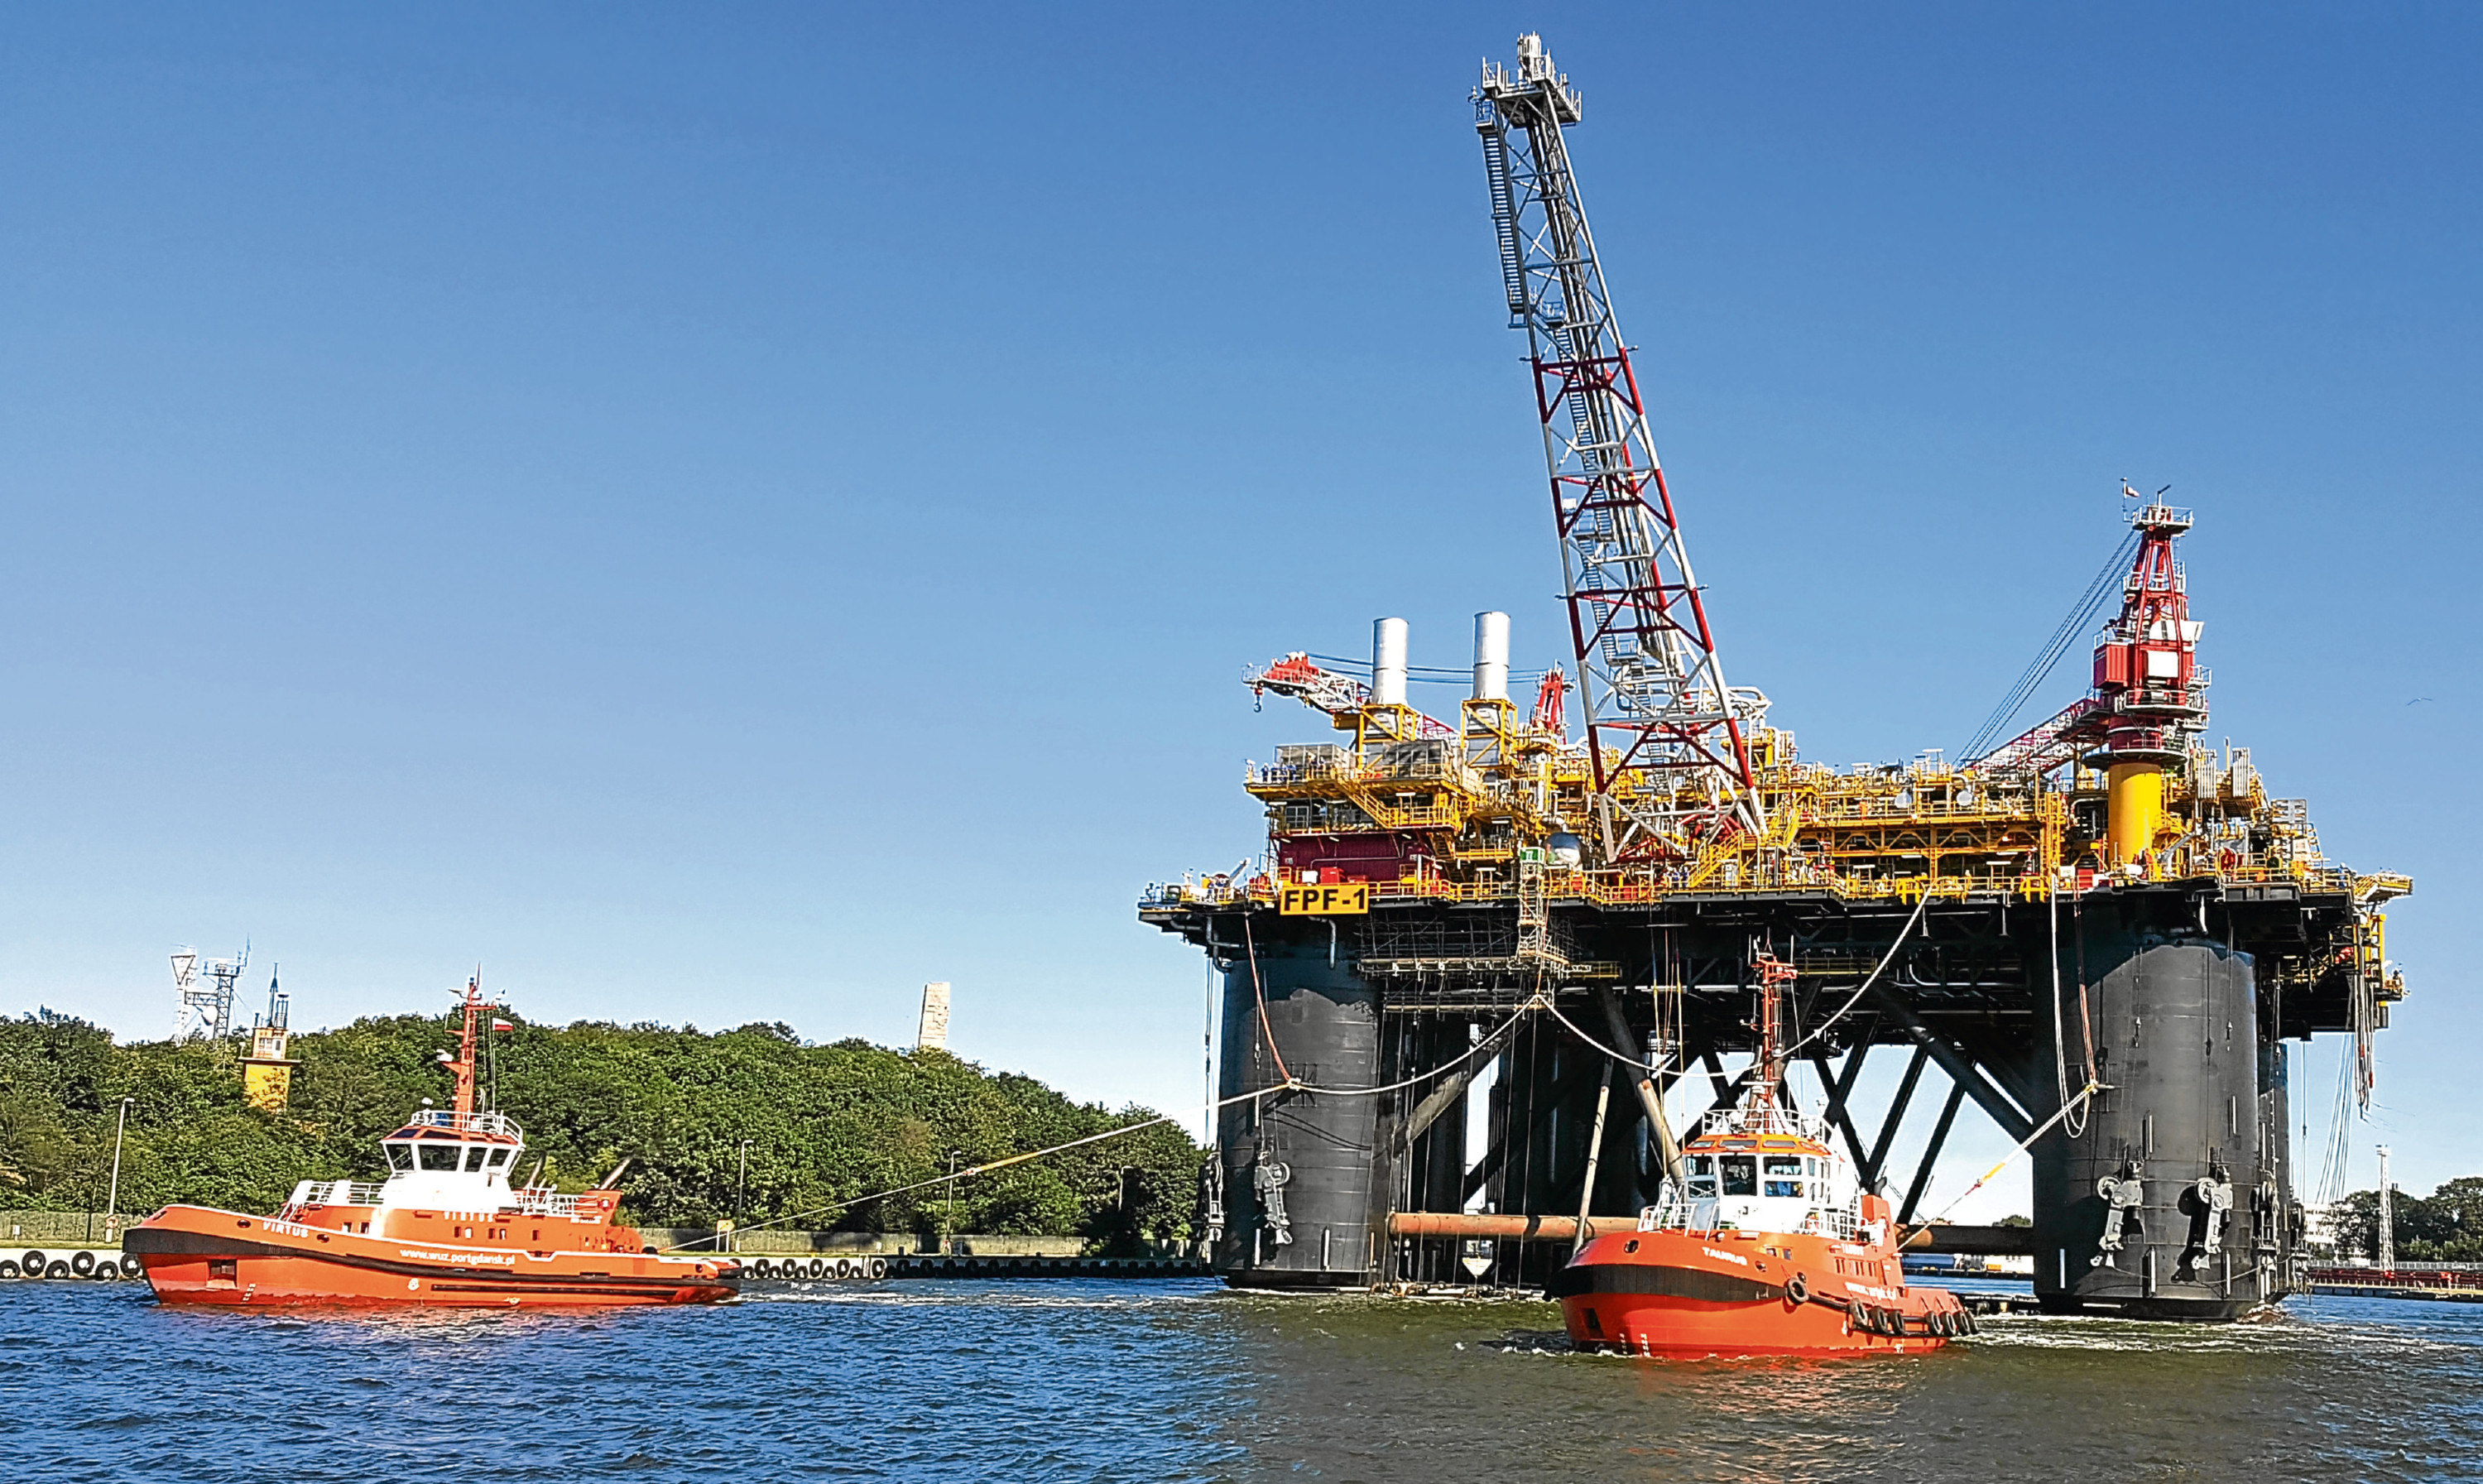 Ithaca Energy's Greater Stella Floating production facility leaves the Remontowa yard in Poland en route for the North Sea